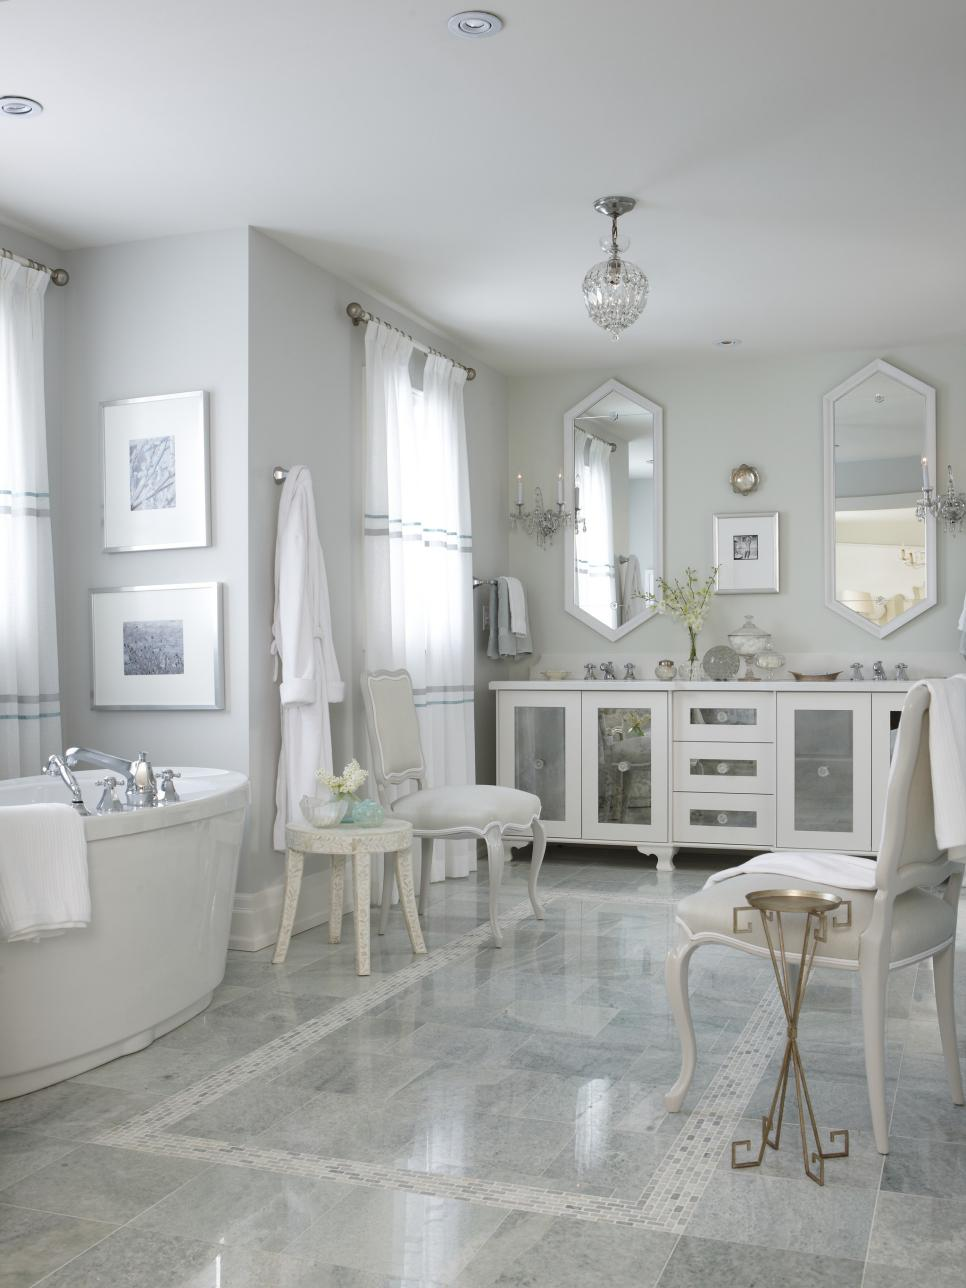 Amazing master bathroom ideas 21